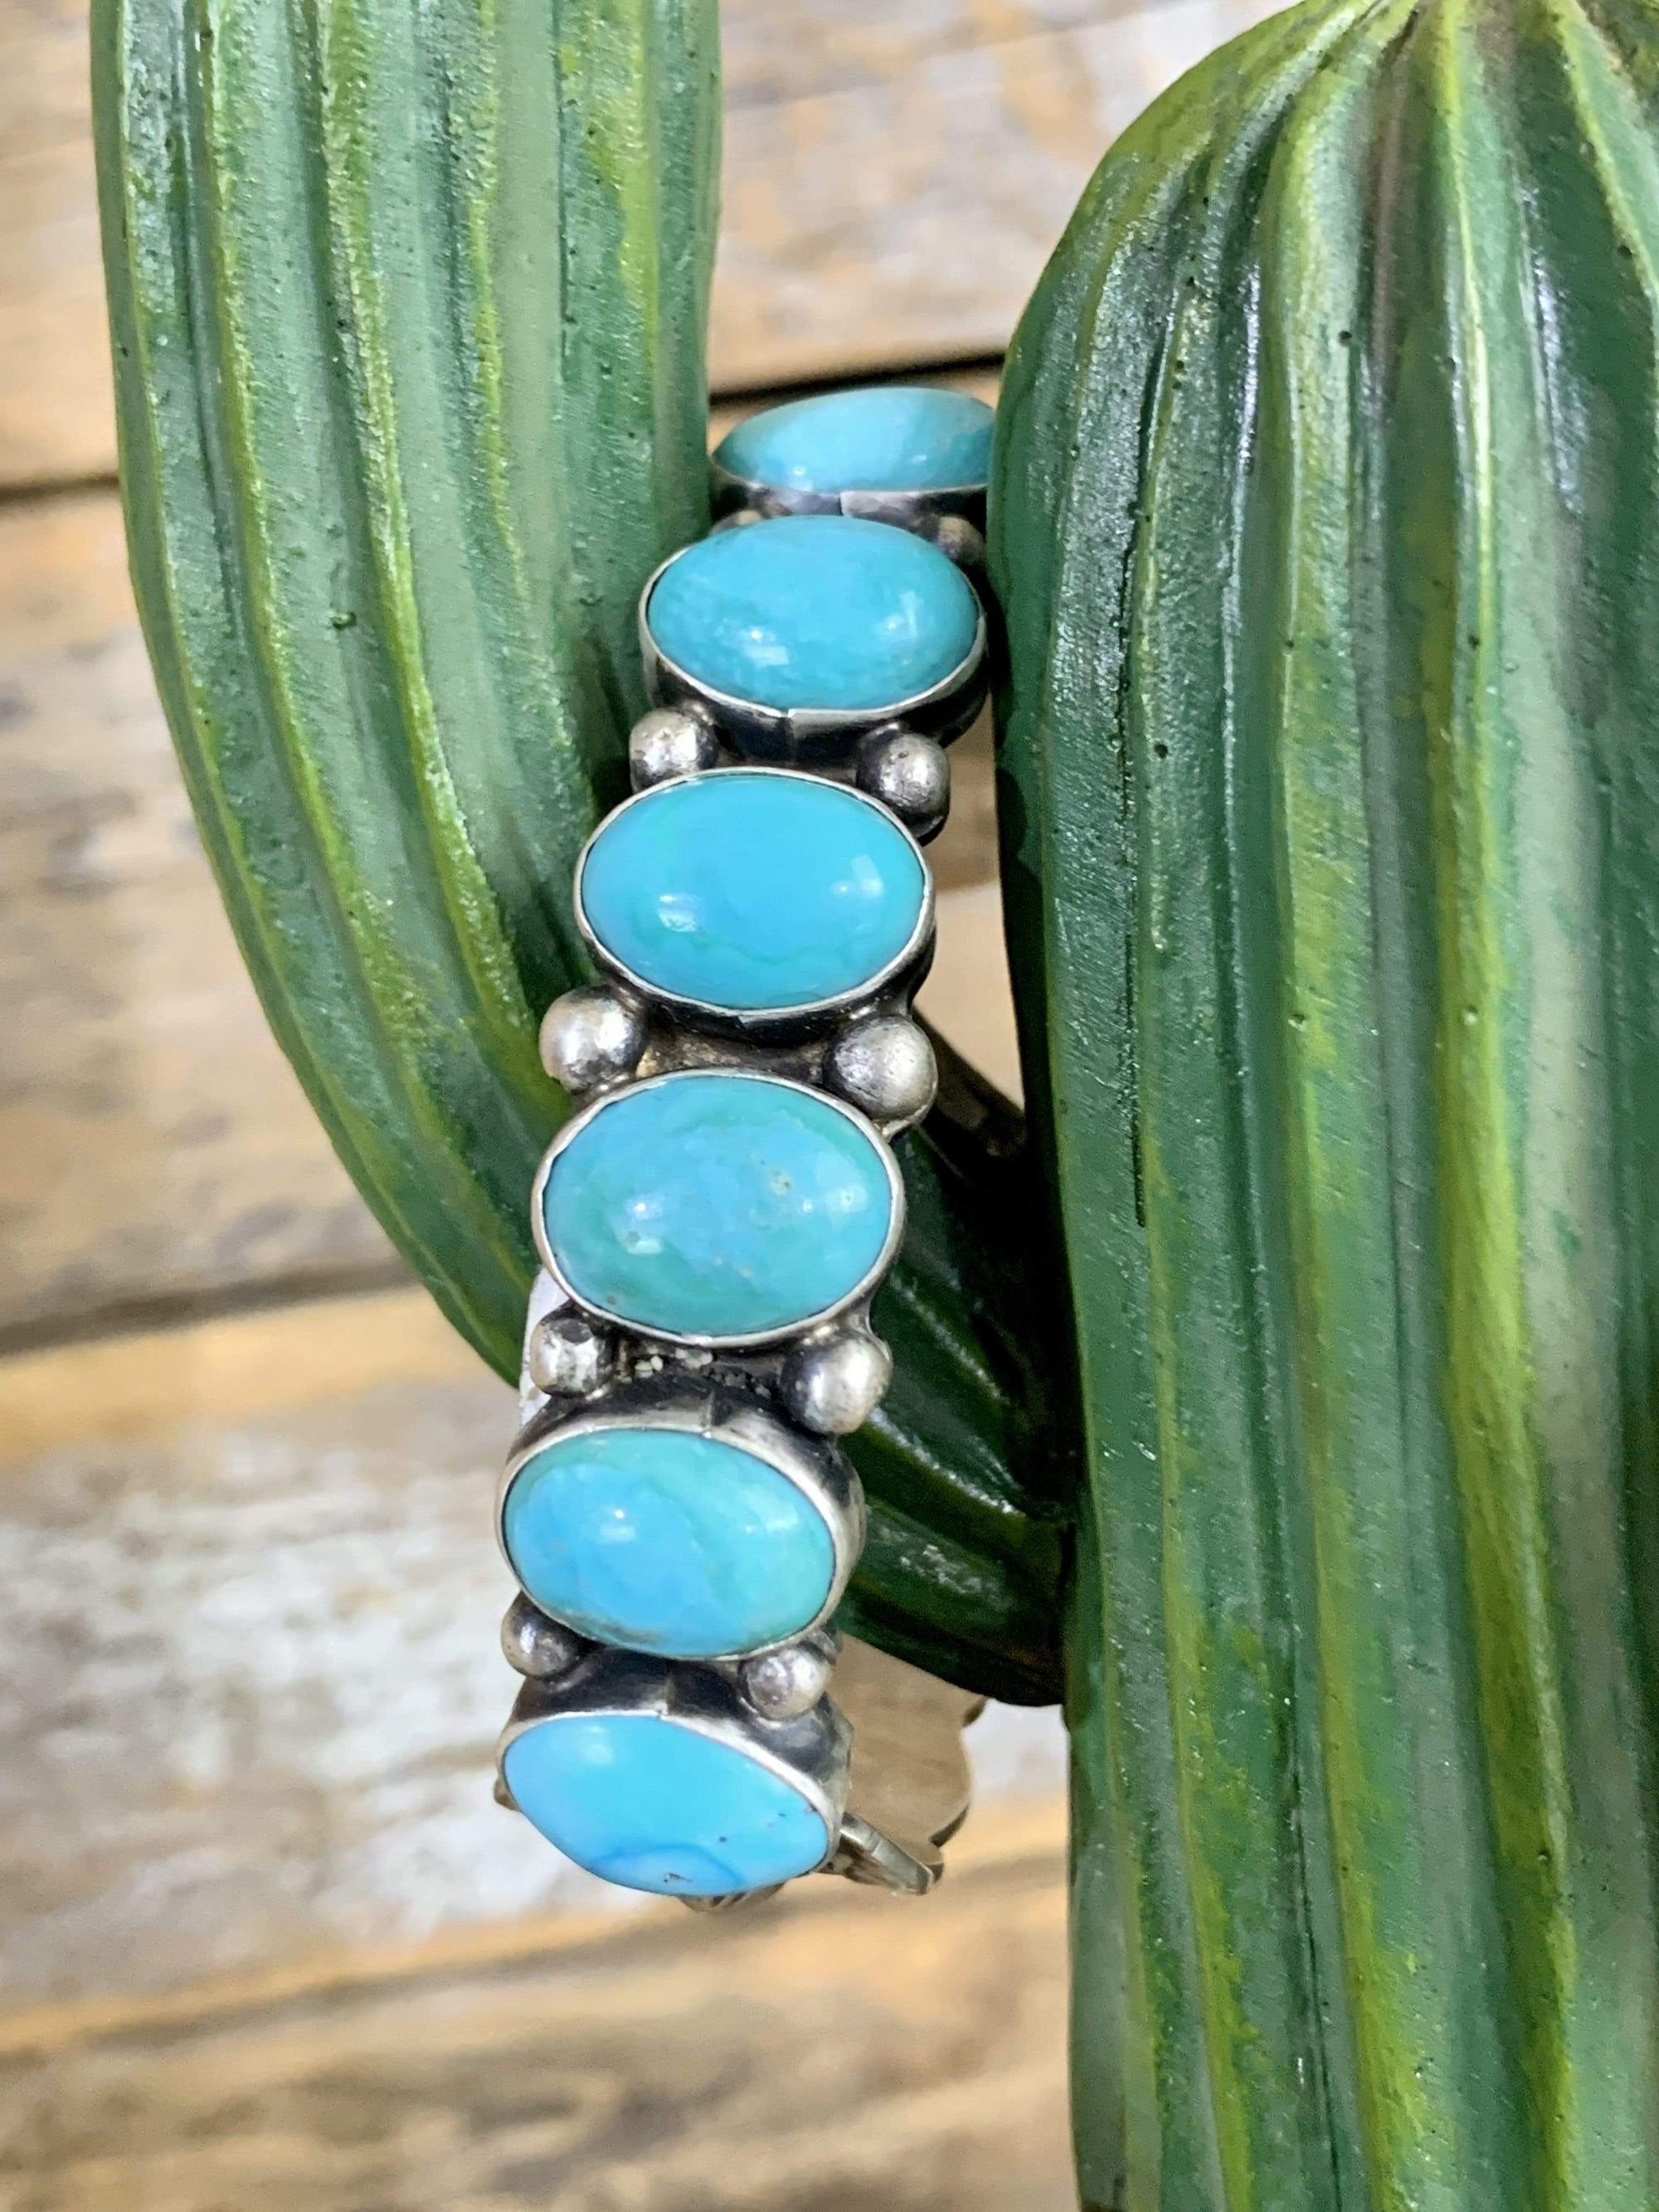 Accessorize In Style Sterling Bracelets Six Stone Turquoise & Sterling Cuff Bracelet